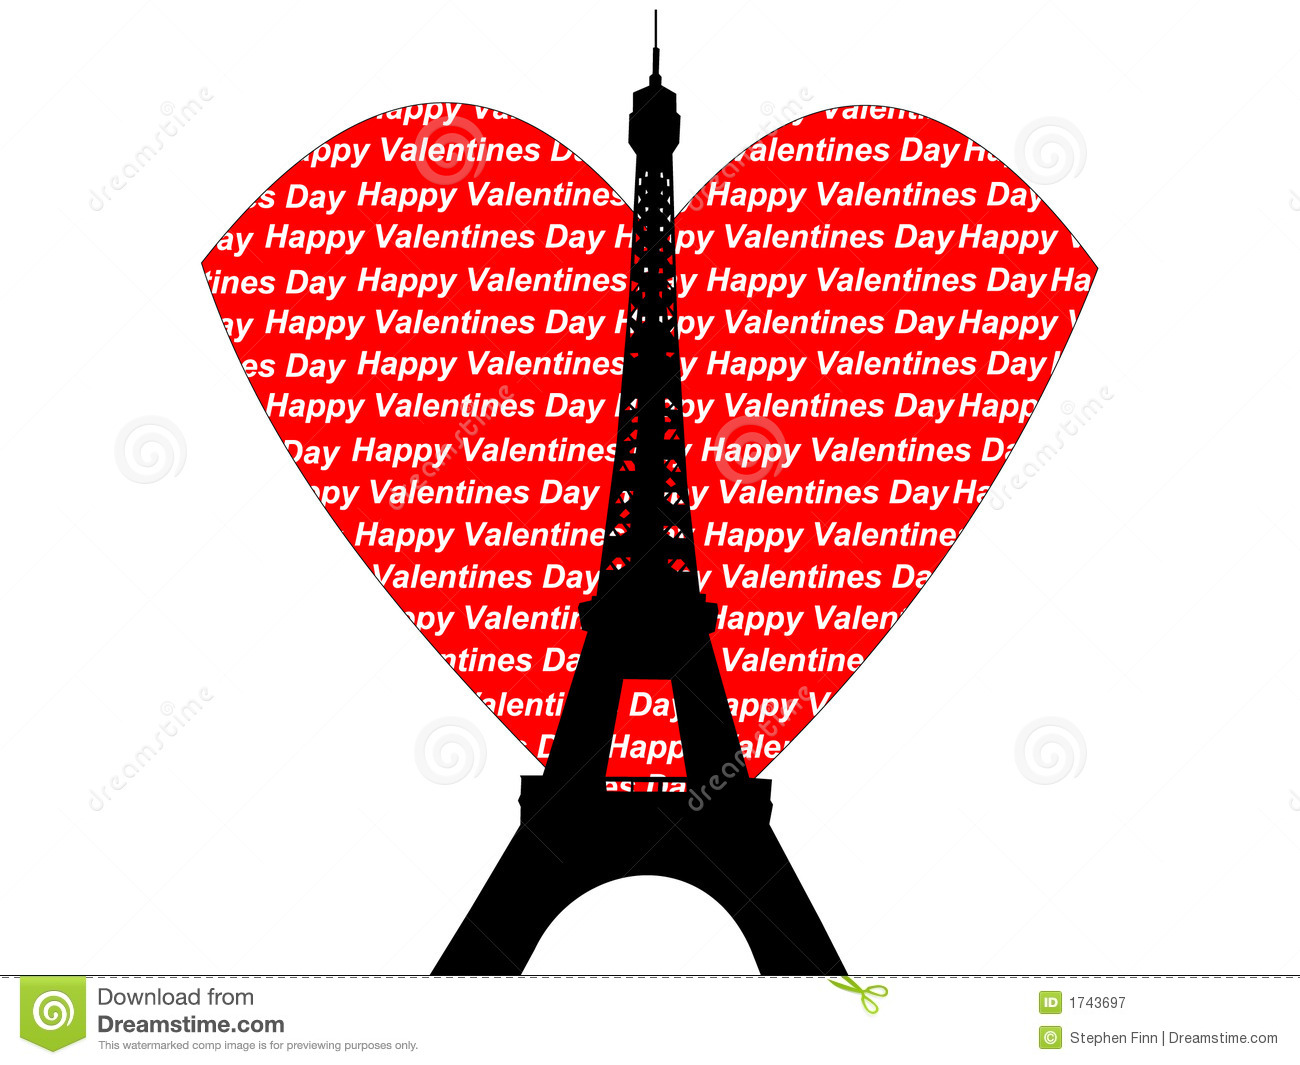 Torre Eiffel Dibujo Animado A Color: Eiffel Tower Valentines Royalty Free Stock Photography